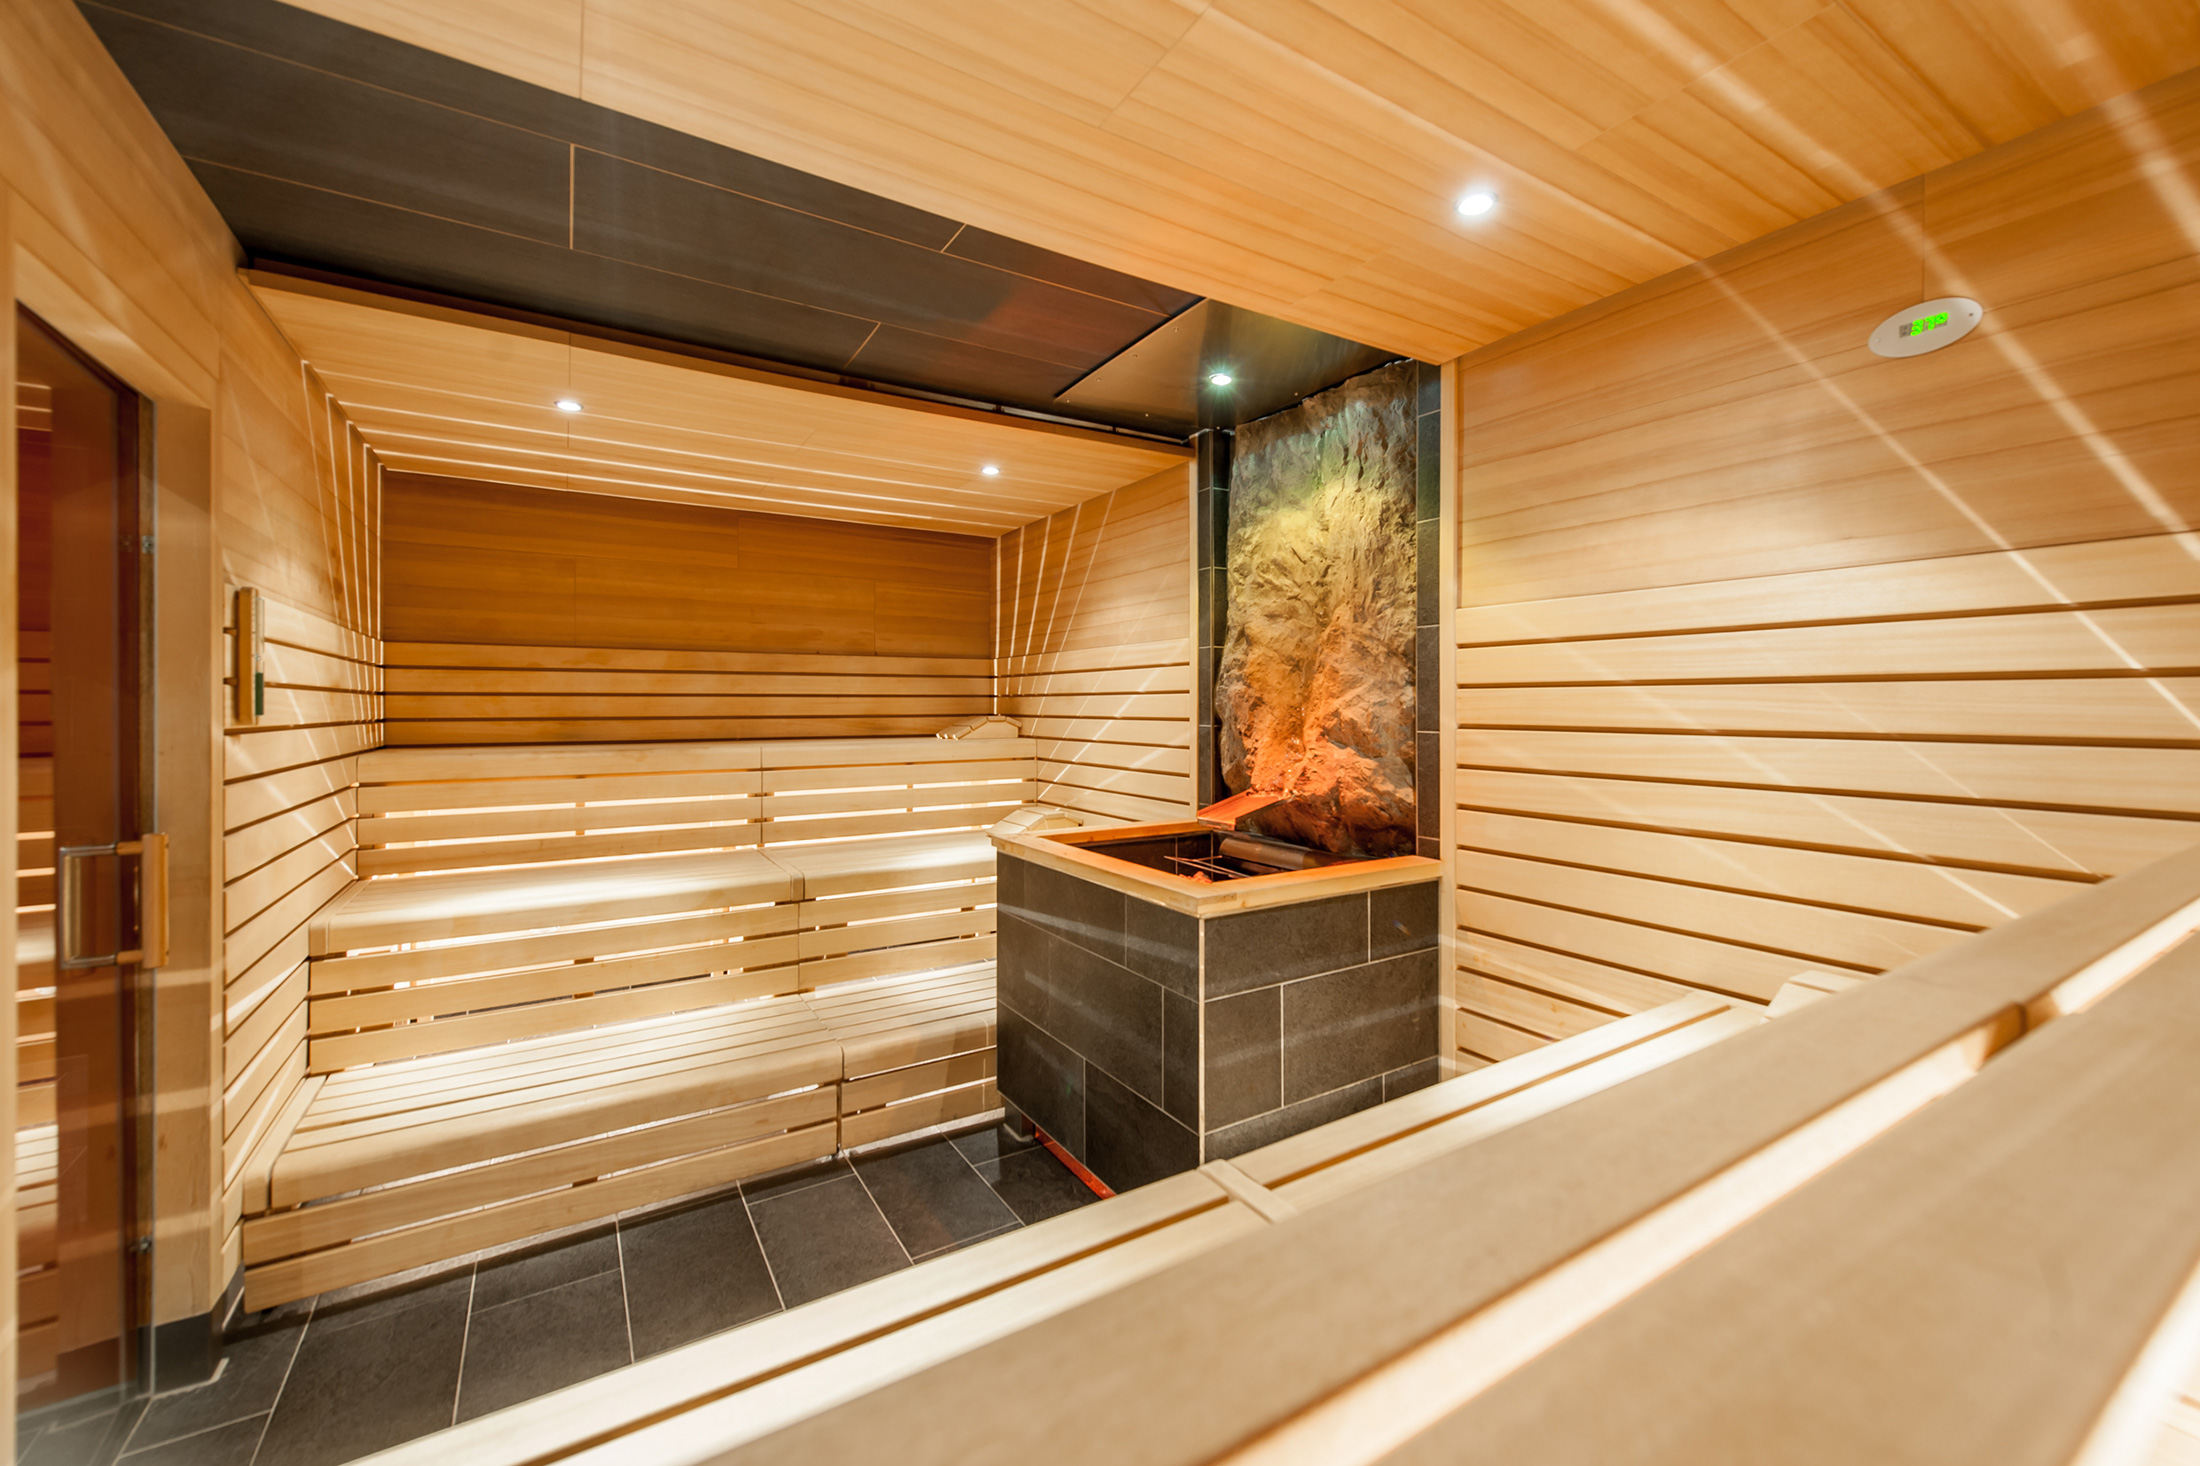 Innenarchitektur Sauna Bilder Beste Wahl Area Tauern Spa Thermal Bath